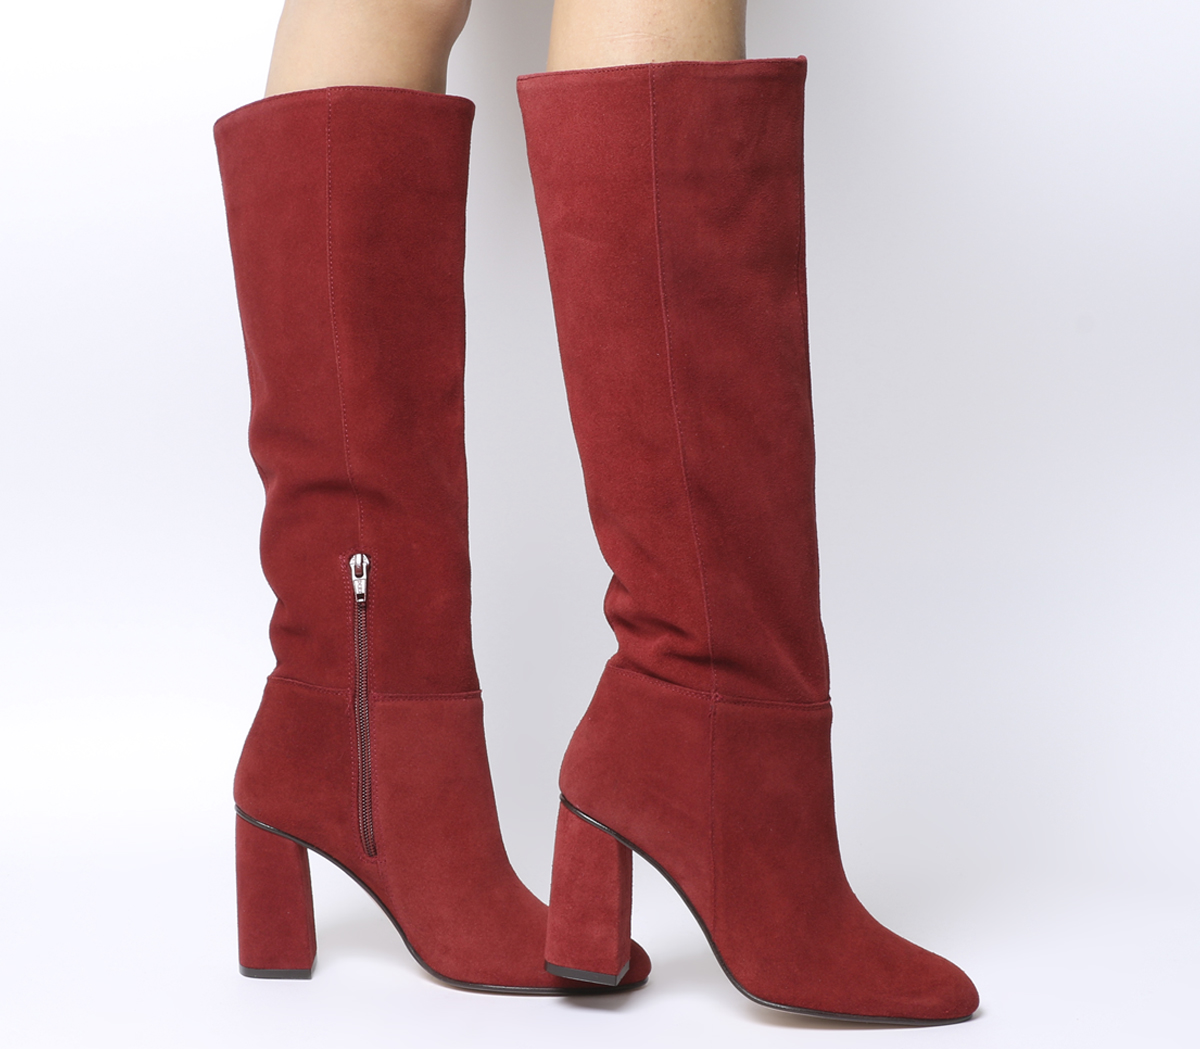 a171aa1ab4ea Red Suede Block Heel Boots - Best Picture Of Boot Imageco.Org